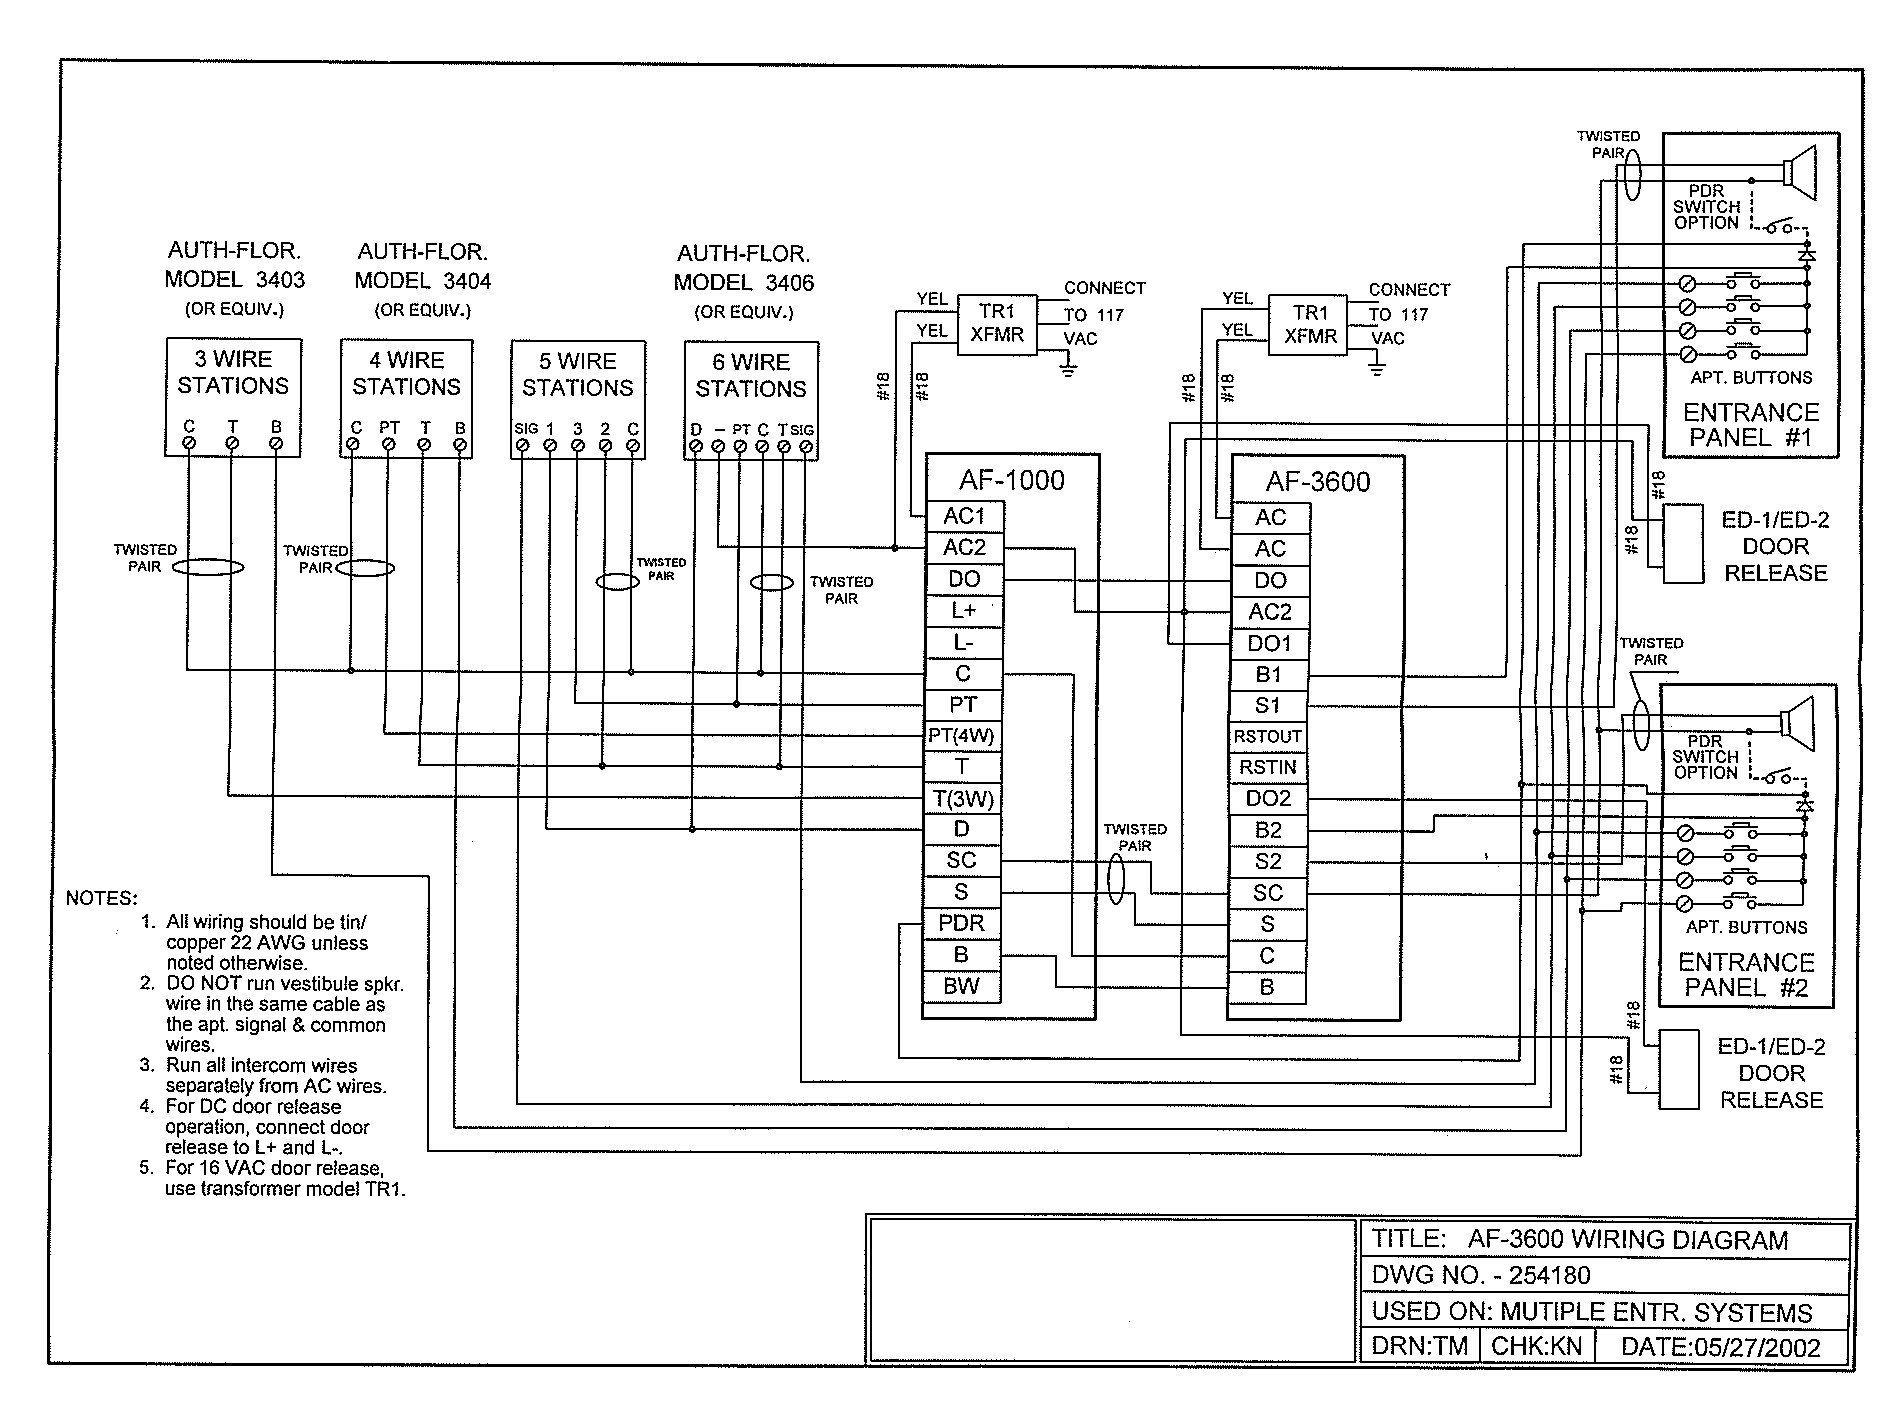 Volume Control Wiring Diagram For Nutone Wall Potentiometer Stereo Controls Auto Electrical Rh Dantone Me